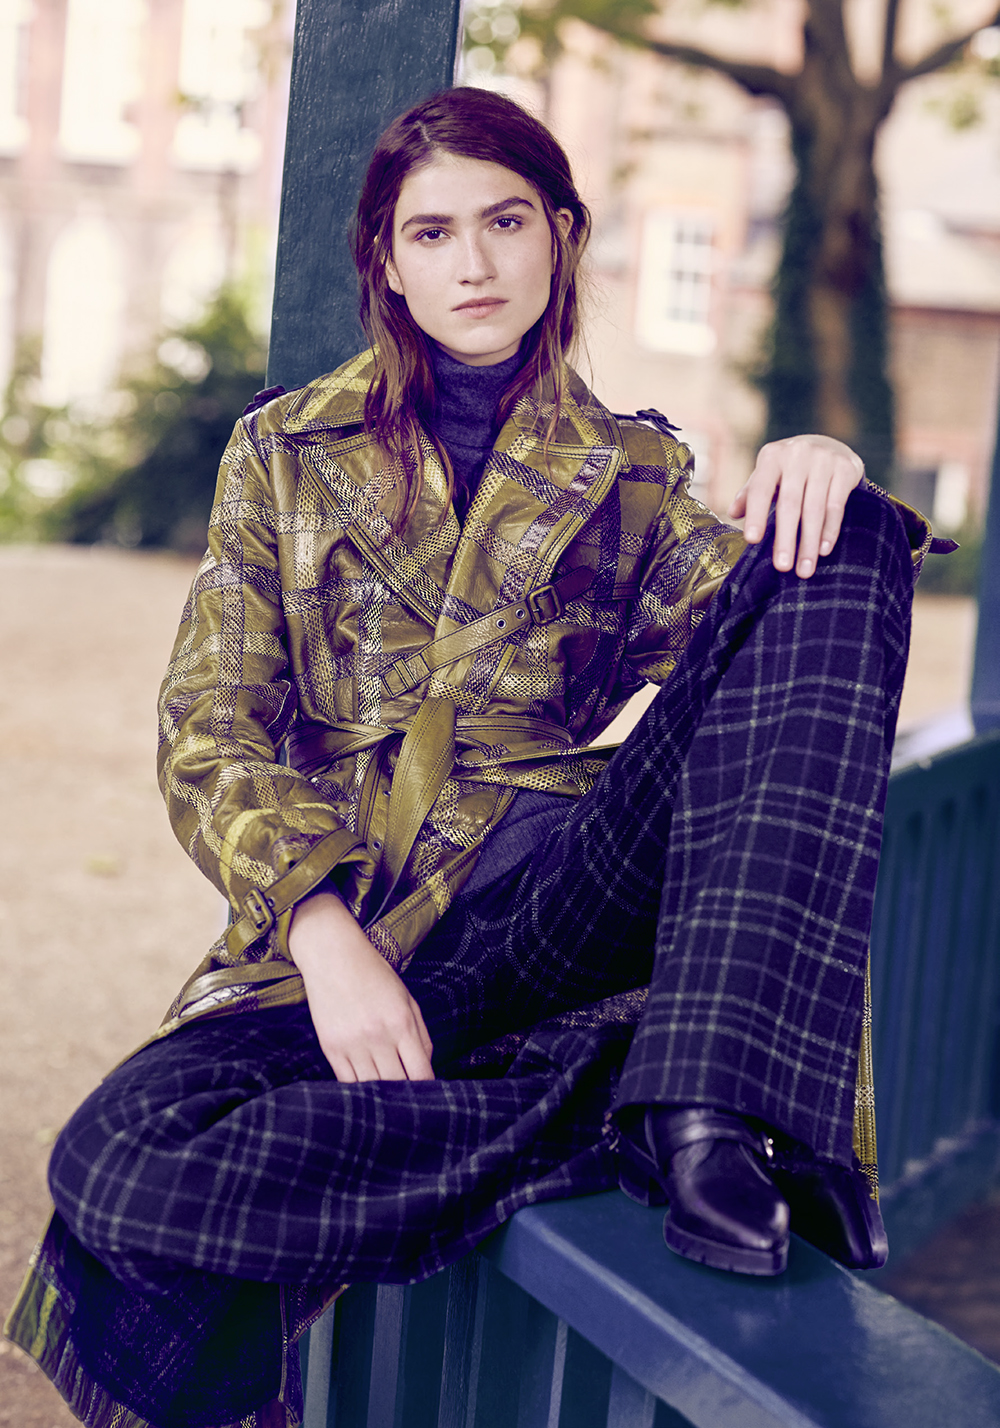 Fashion_main Trench_pdf_5-2.jpg